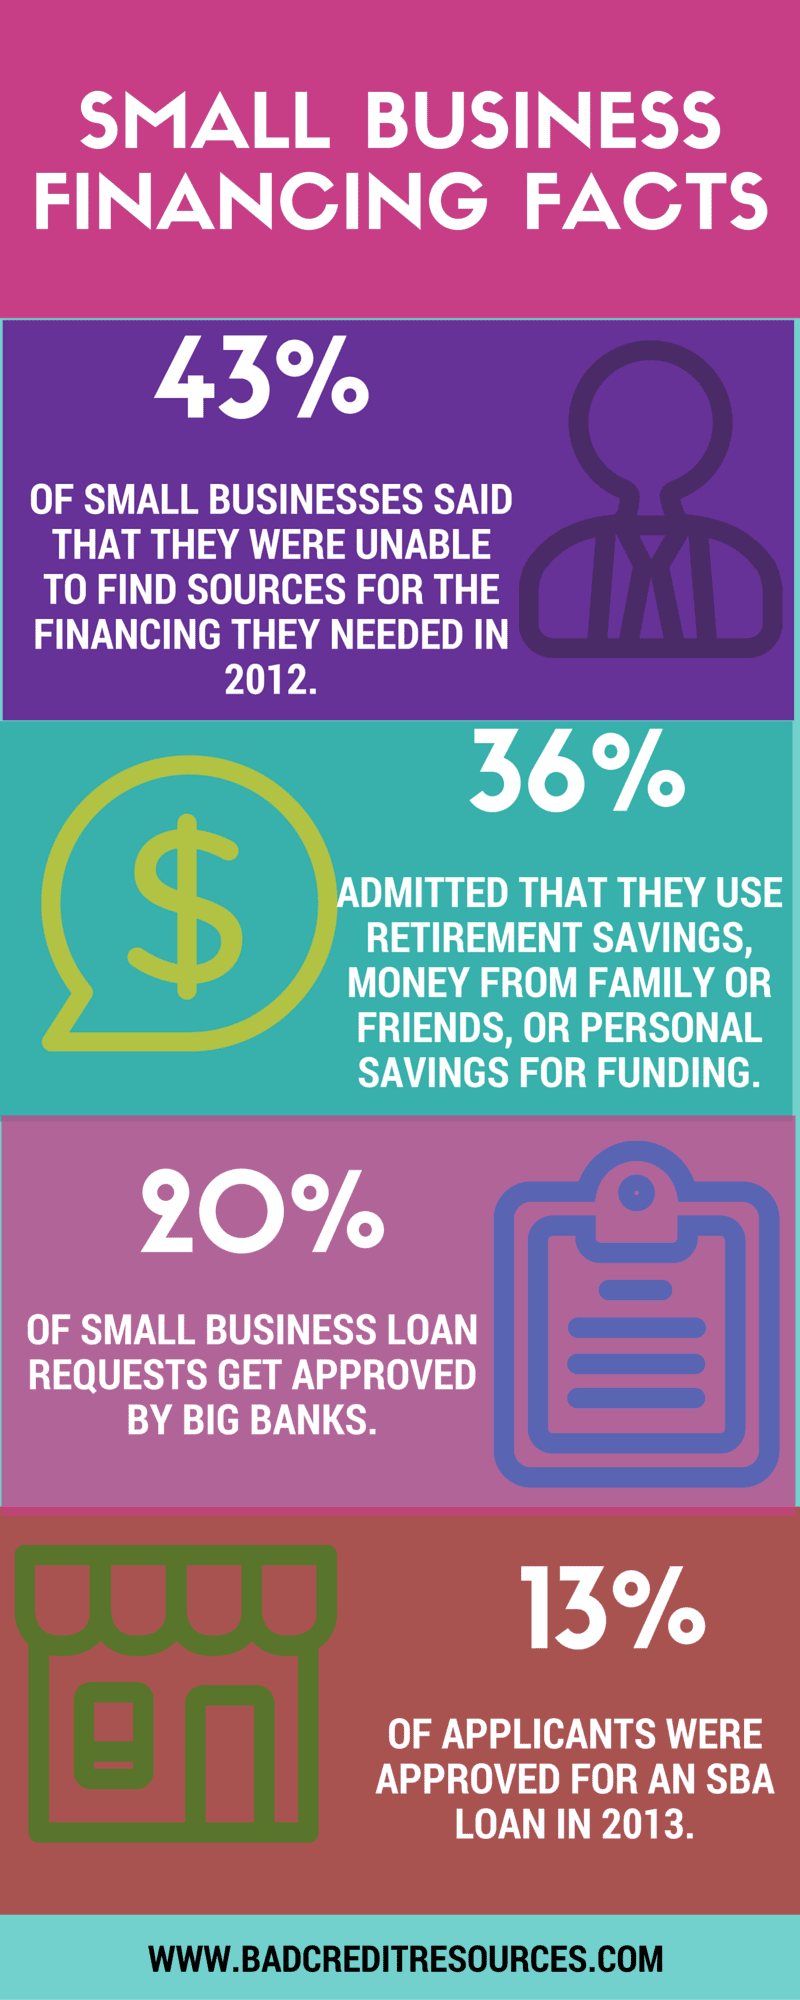 Small Business Financing Facts